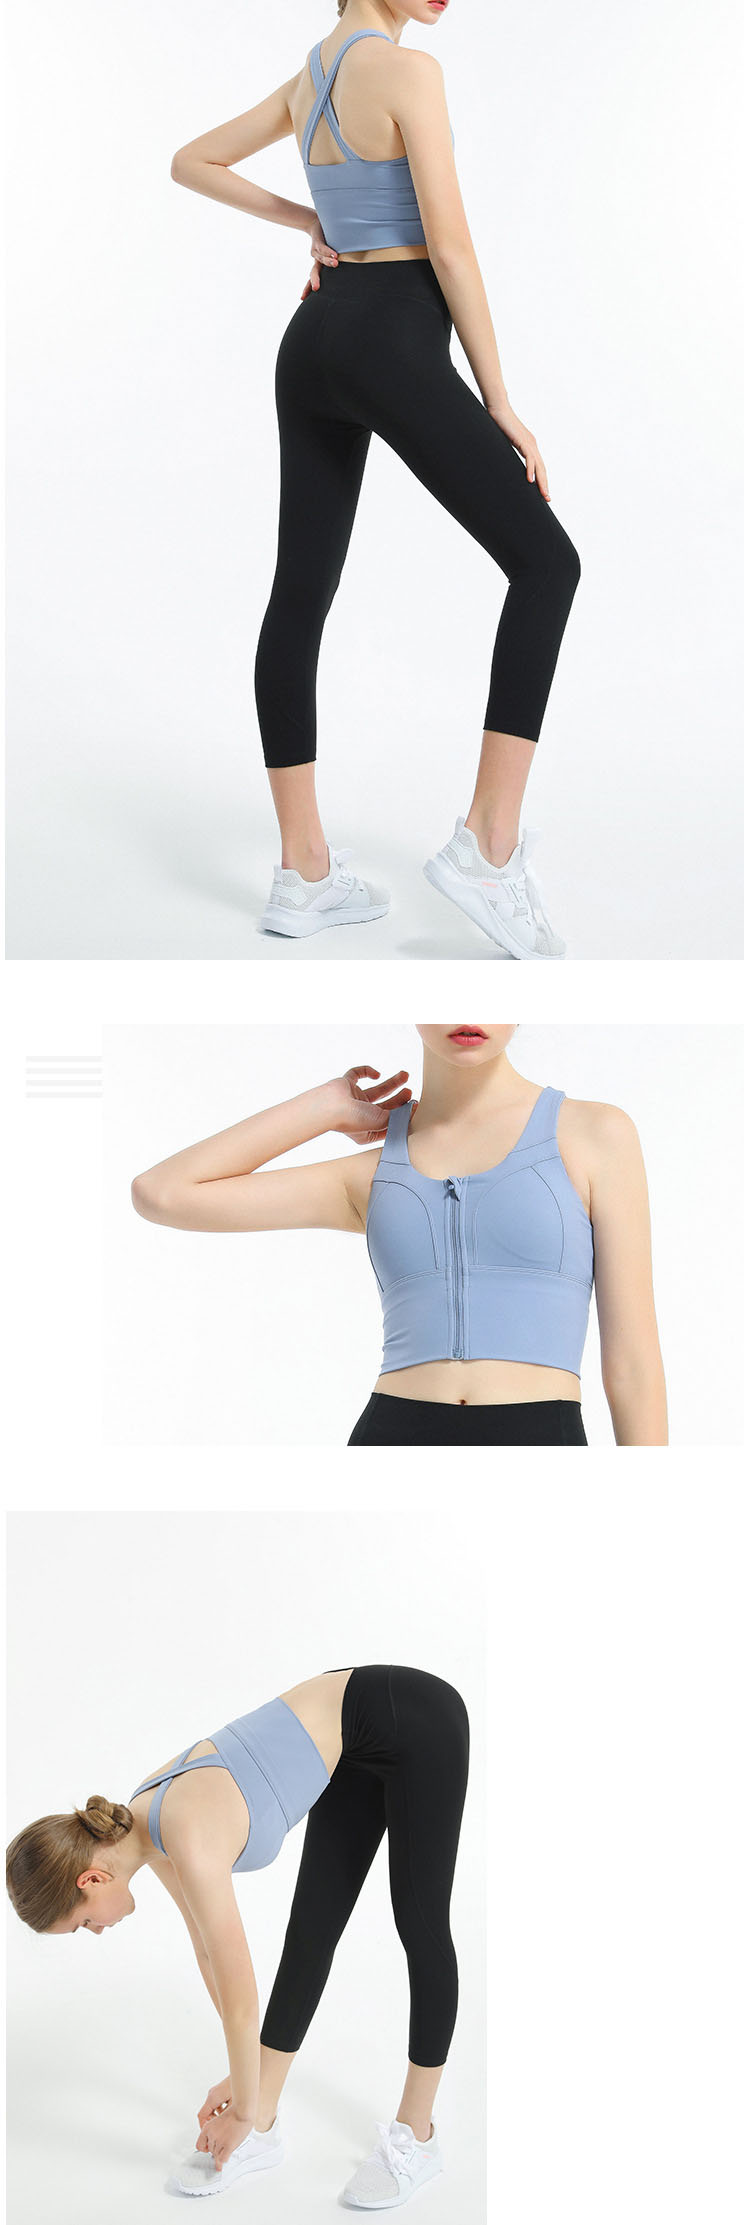 Front zip bra is becoming more fashionable